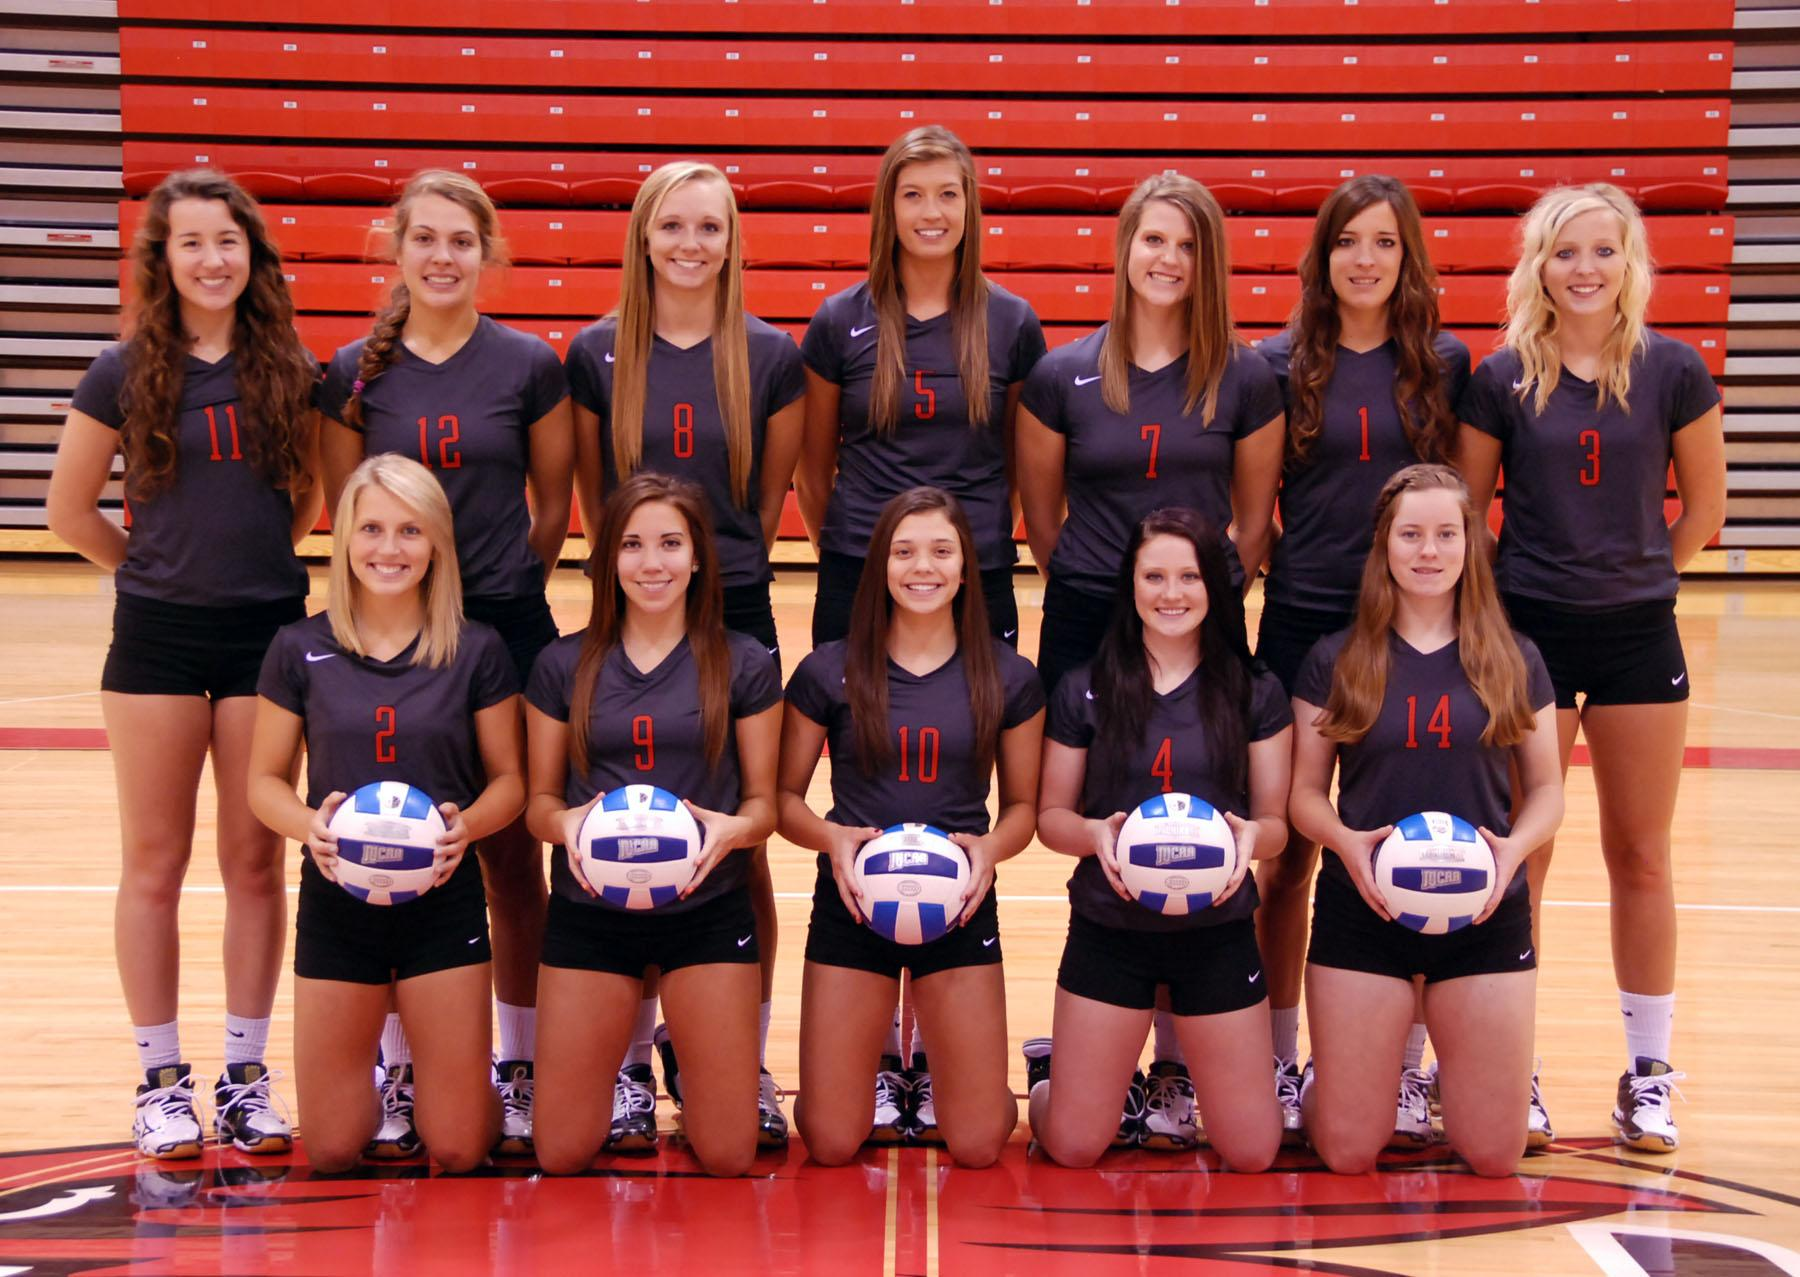 Members of the 2014 Northeast Community College volleyball team include (front row, l-r) Sammy Sullivan, Allen, student manager, Brittany Sullivan Allen, Kiara Lopez, Schuyler, Meagan Backer, Wayne, Kelsie Myers, Broken Bow, Maggie Earney Whitney, and Michelle Seagren, trainer.   Back row (l-r), Amanda Schultze head coach, Sarah Maxson Wayne, Morgan Uhlir, Norfolk, Sydney Whitmarsh, Arlington, Grace Ecklund, Overton, Taryn Luedtke ,Creston, Whitney Valasek, Palmer, Haley Roelle, Creston, and Sarah Novak, assistant coach. (Courtesy Photo)